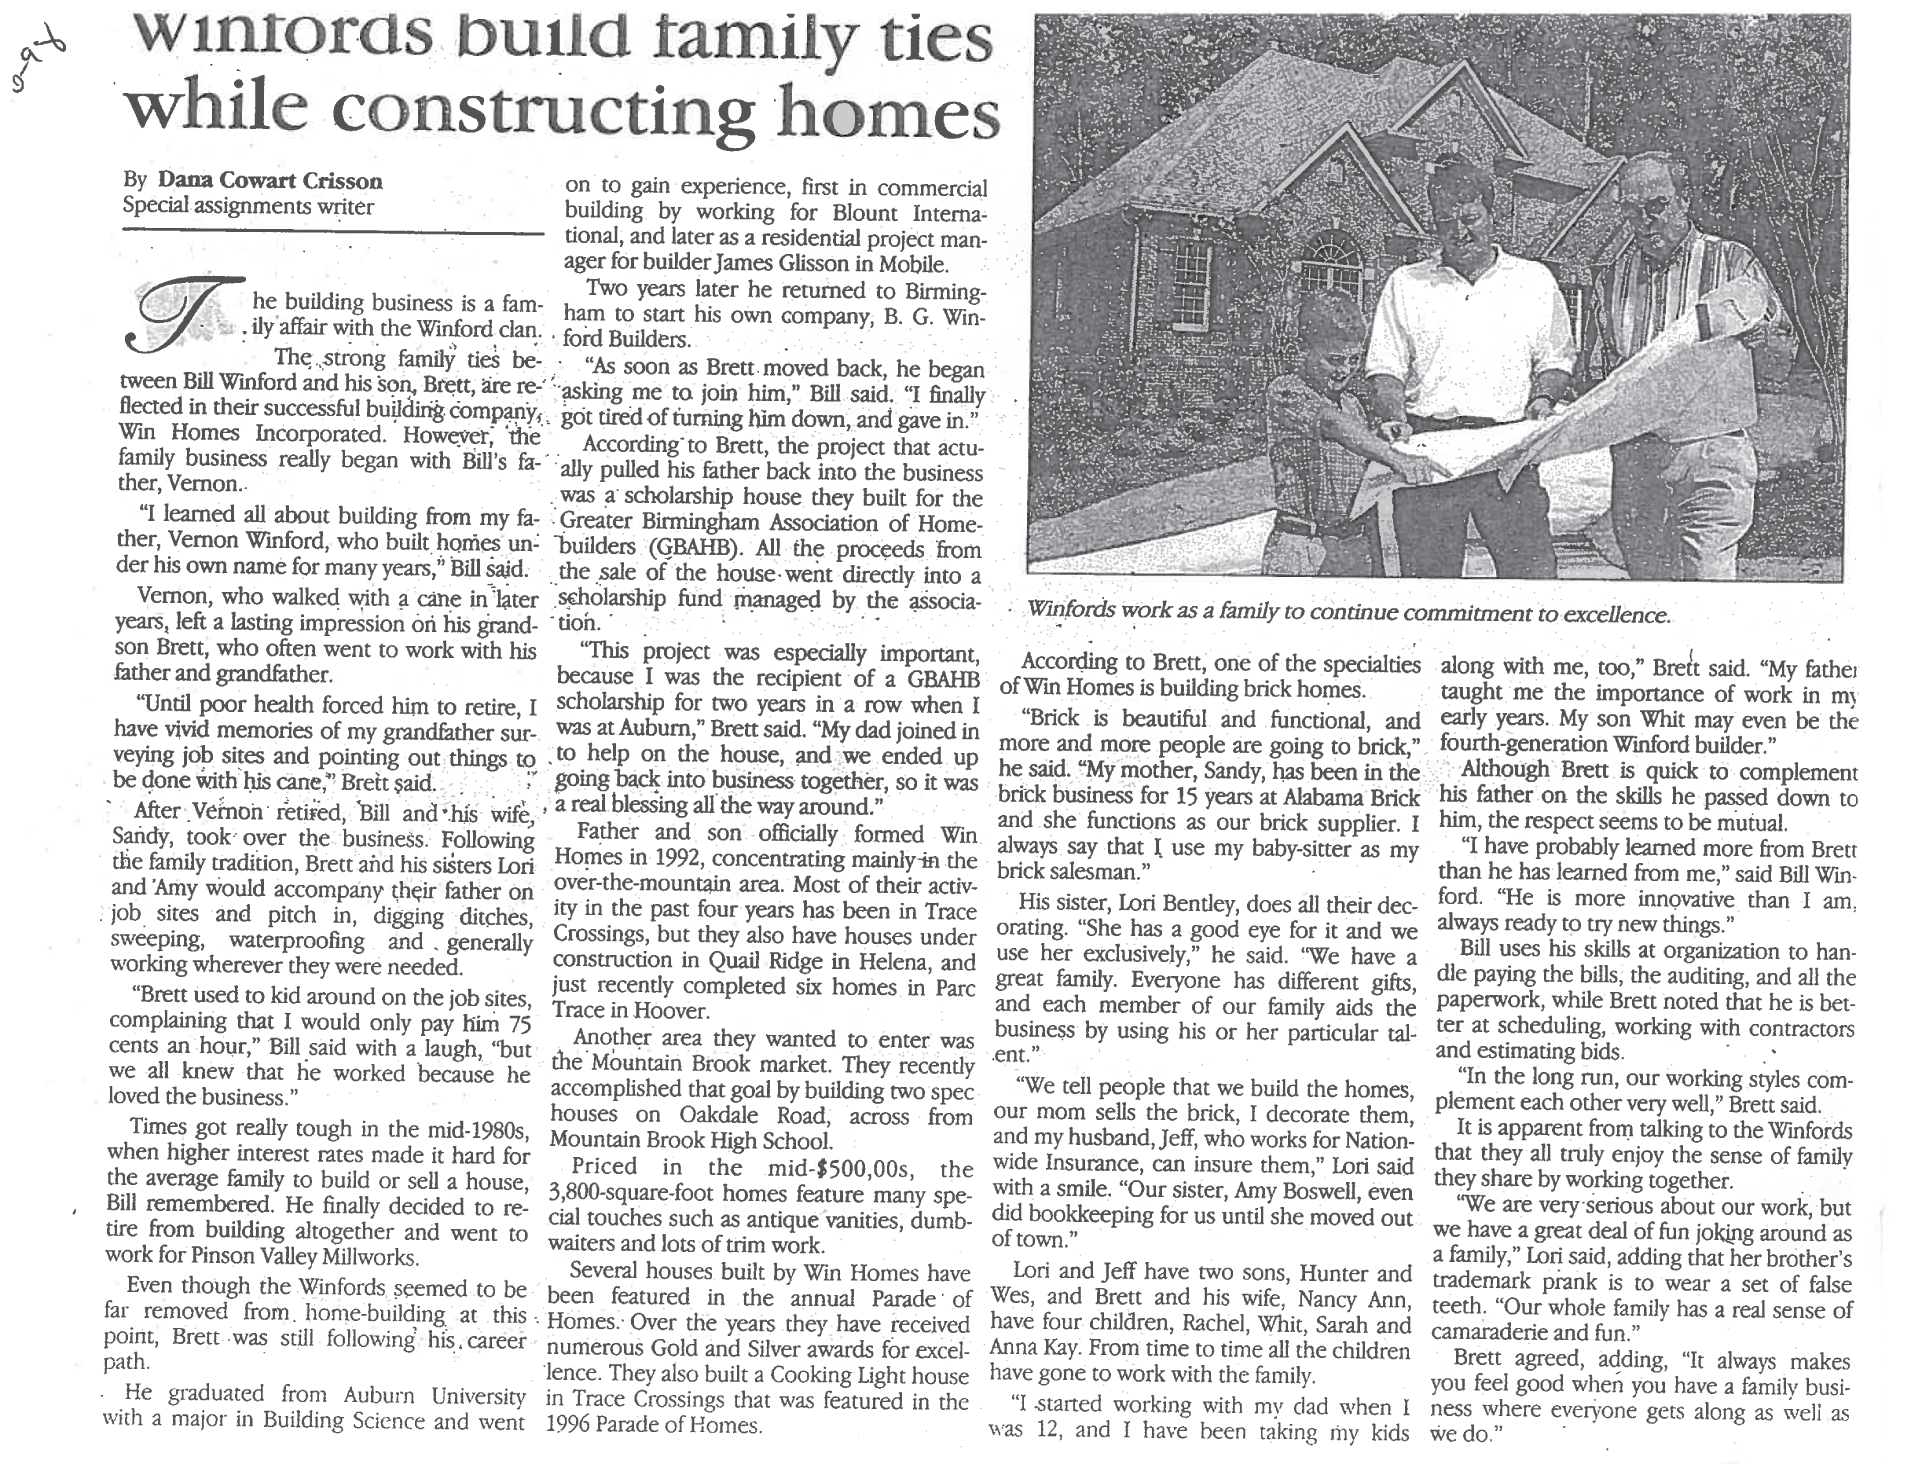 1998 Winford Family Ties Clipping